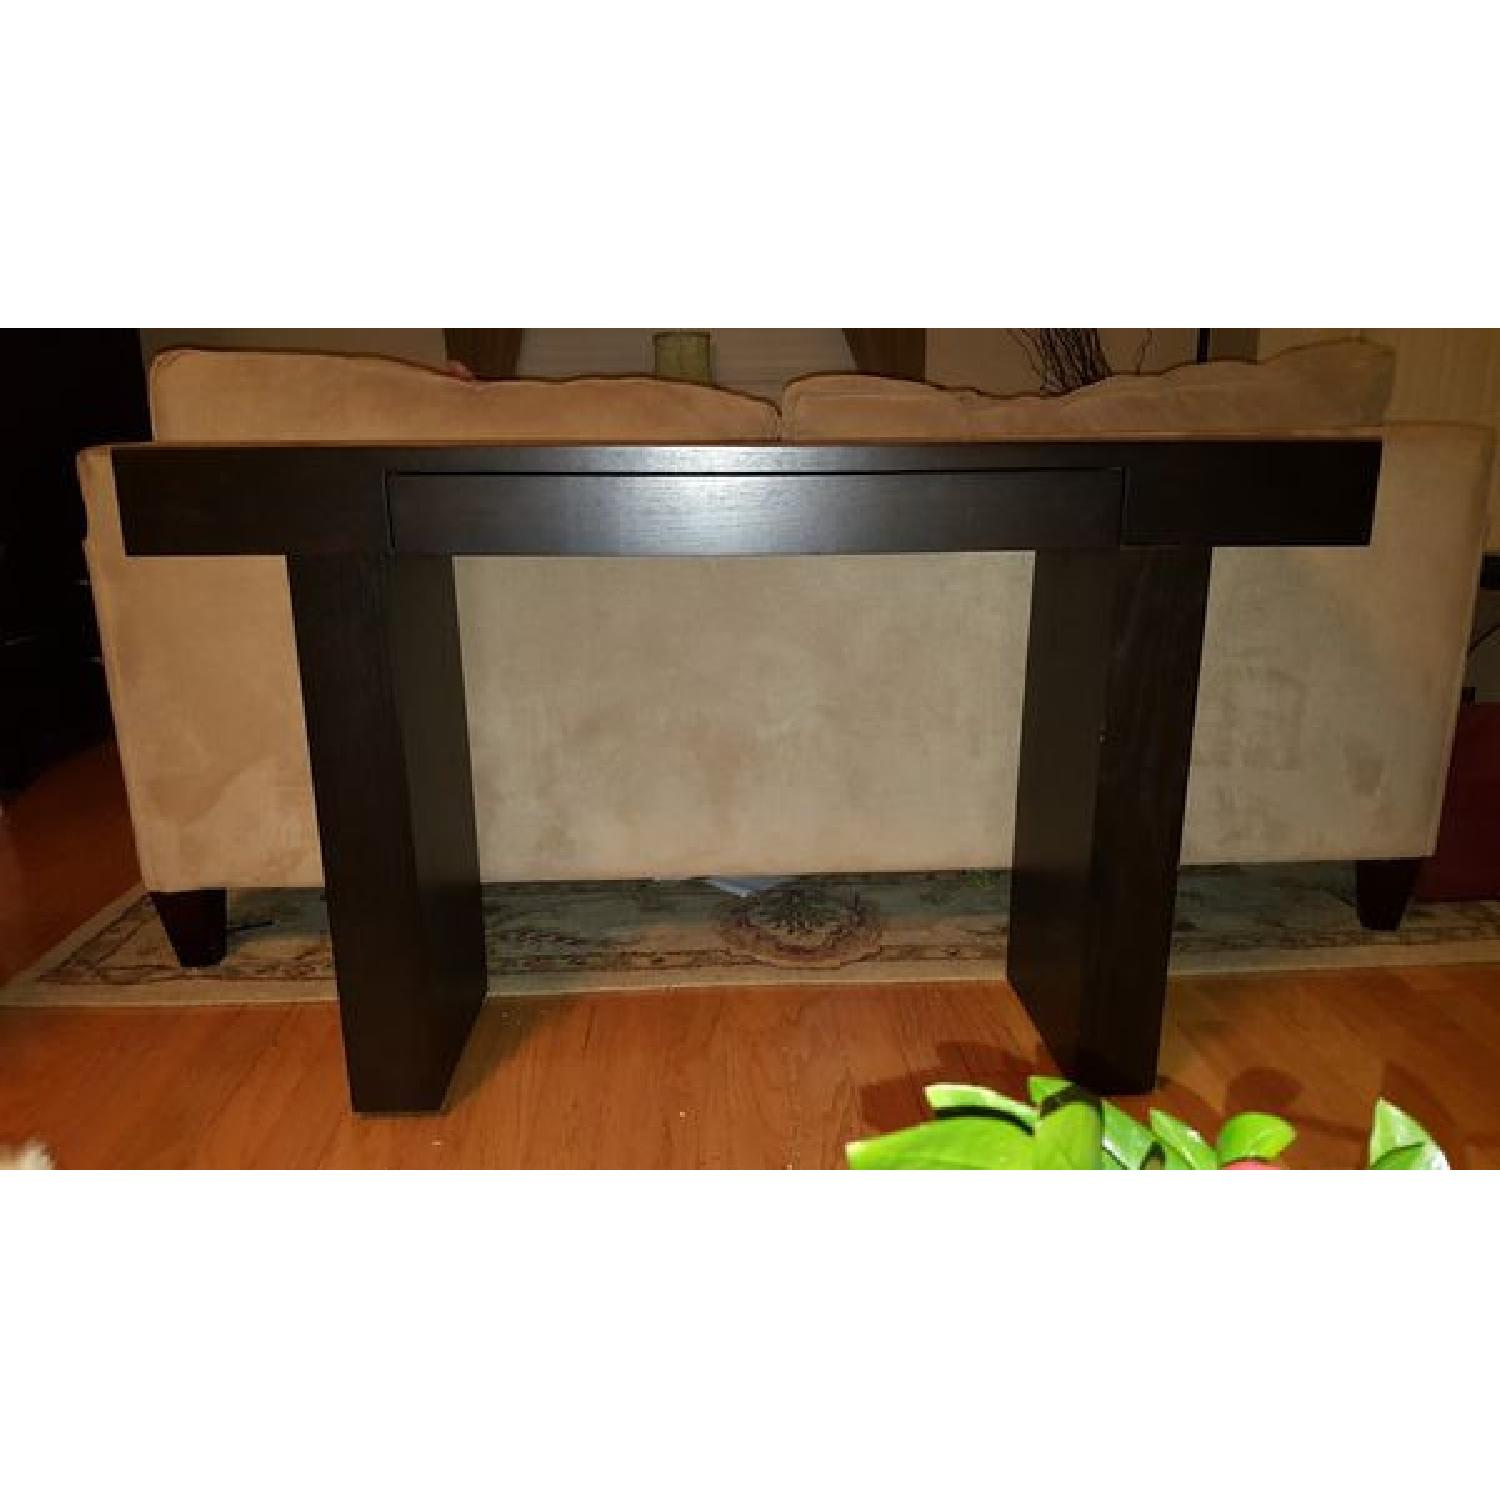 West Elm Terra Console in Chocolate - image-1